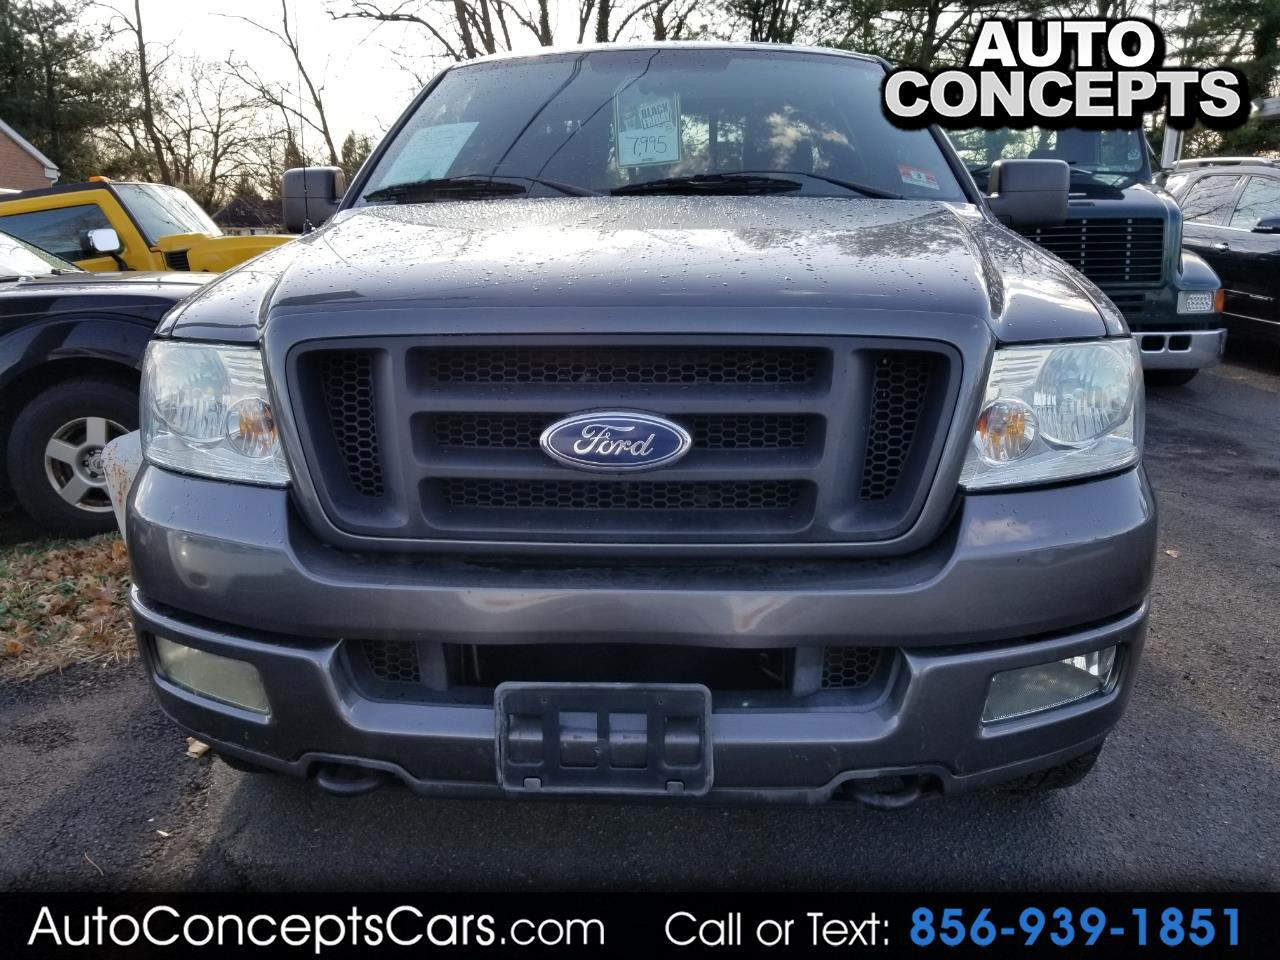 Ford F-150 FX4 SuperCab Flareside 4WD 2004